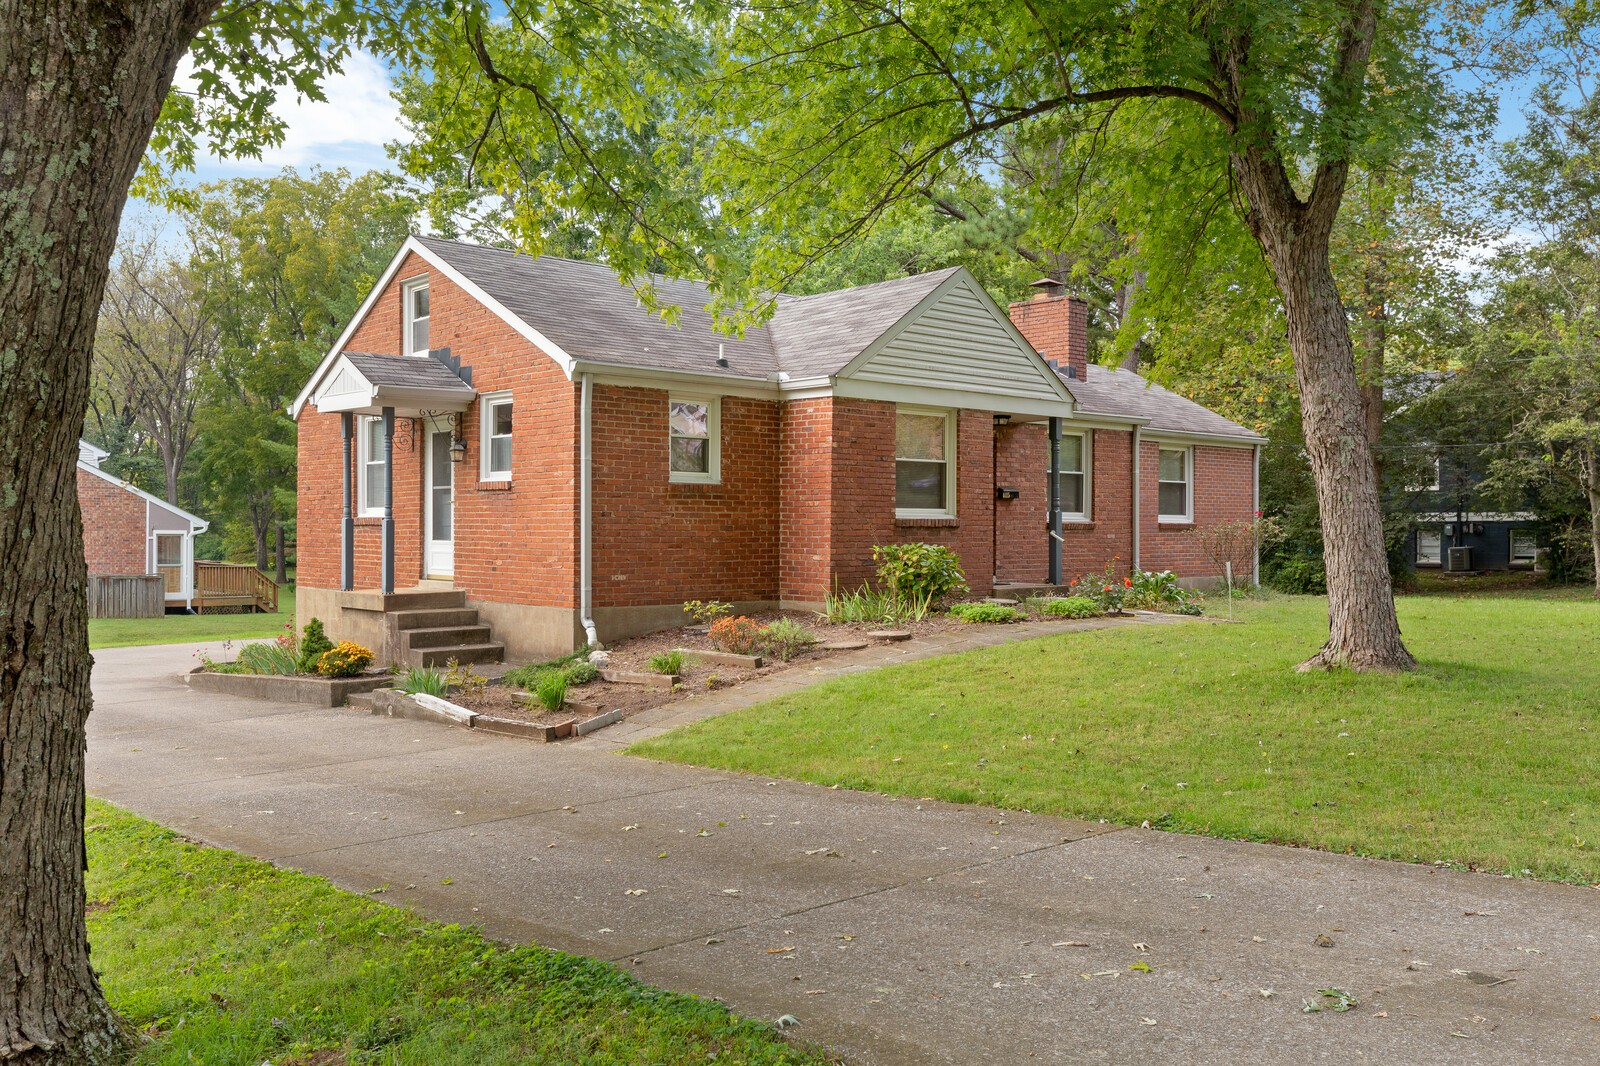 Prime location near Oak Hill, Green Hills and Lipscomb! Well cared for brick home on a gorgeous .4 acre corner lot. Selling AS-IS. Offers due Oct 14 at noon.